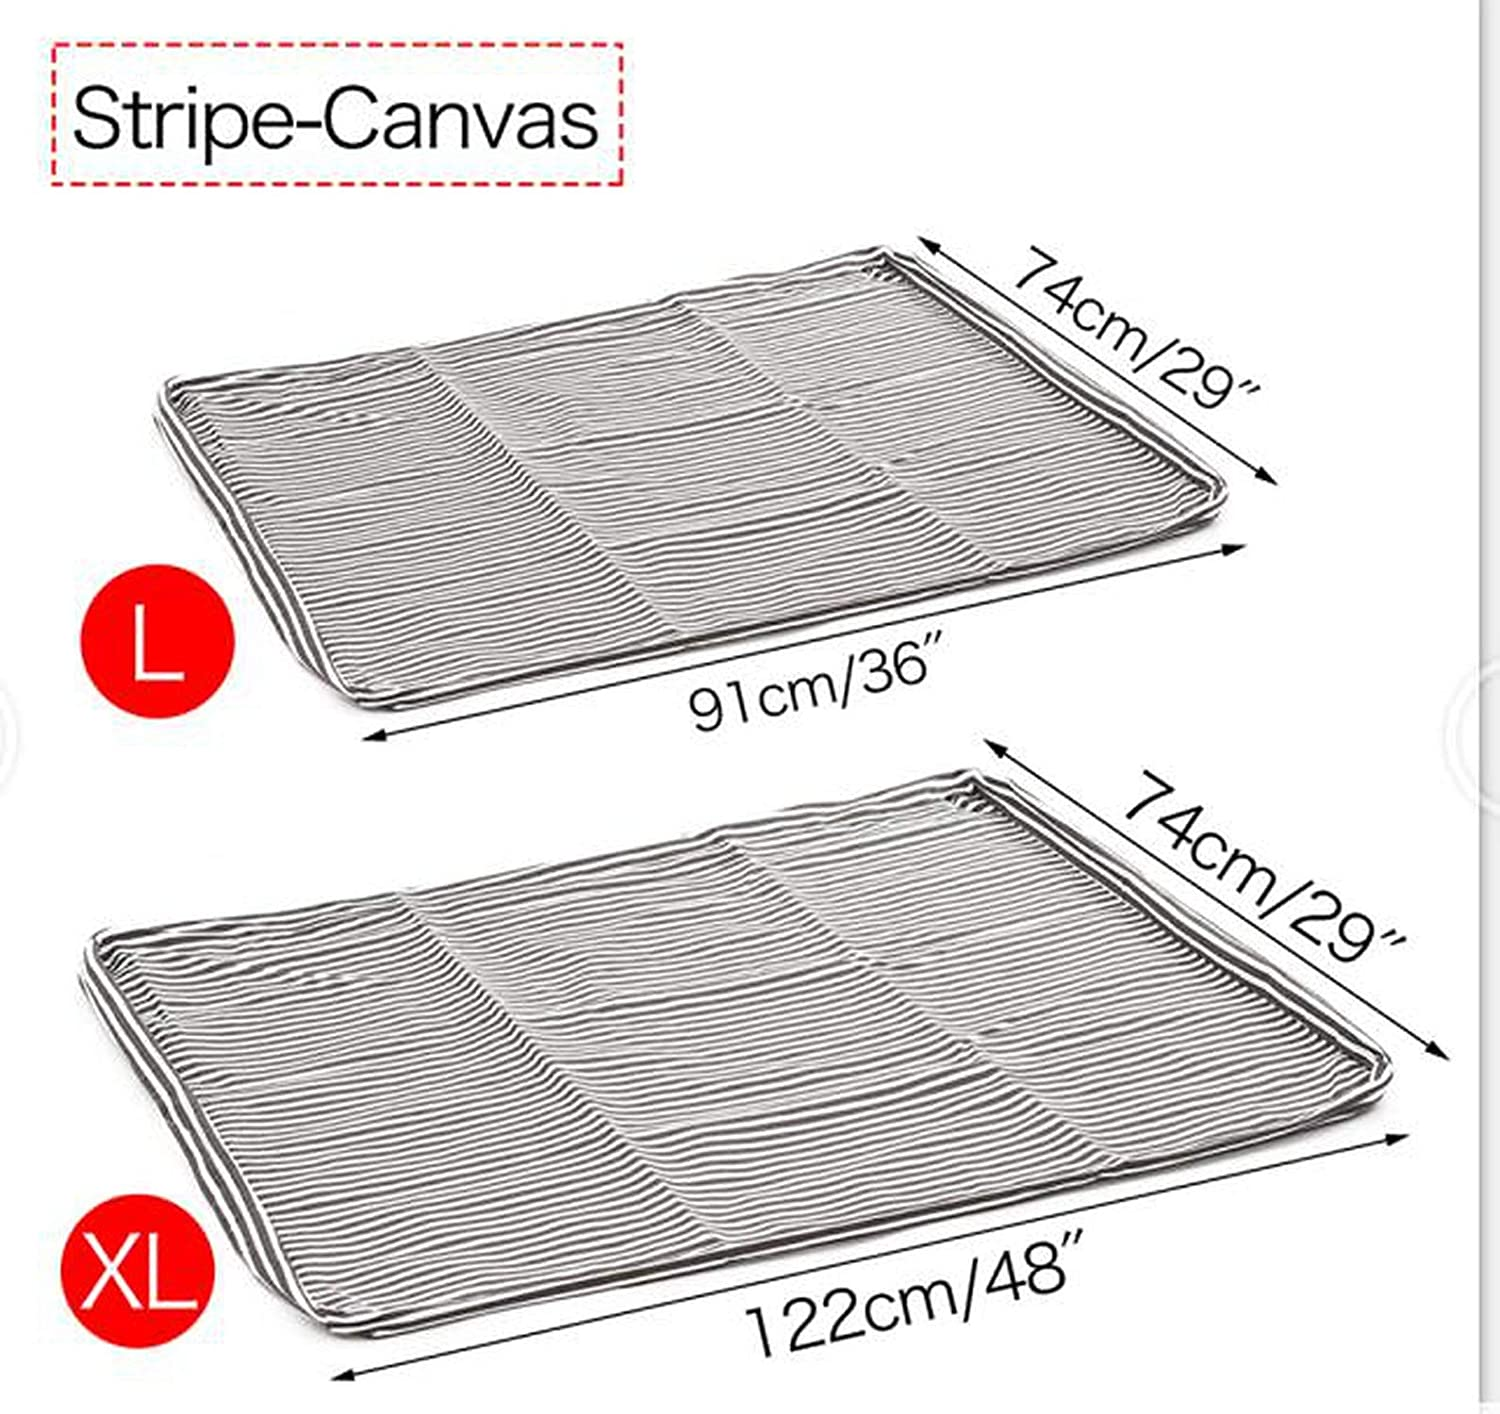 Canvas stripe 91x74cmPet Replacement Dog Bed Cover Reversible Washable Kennel Mat Cozy Warm Nest Bed Cover Soft Warm Cushion Cover for Dog Cats,Denim bluee,122X74Cm